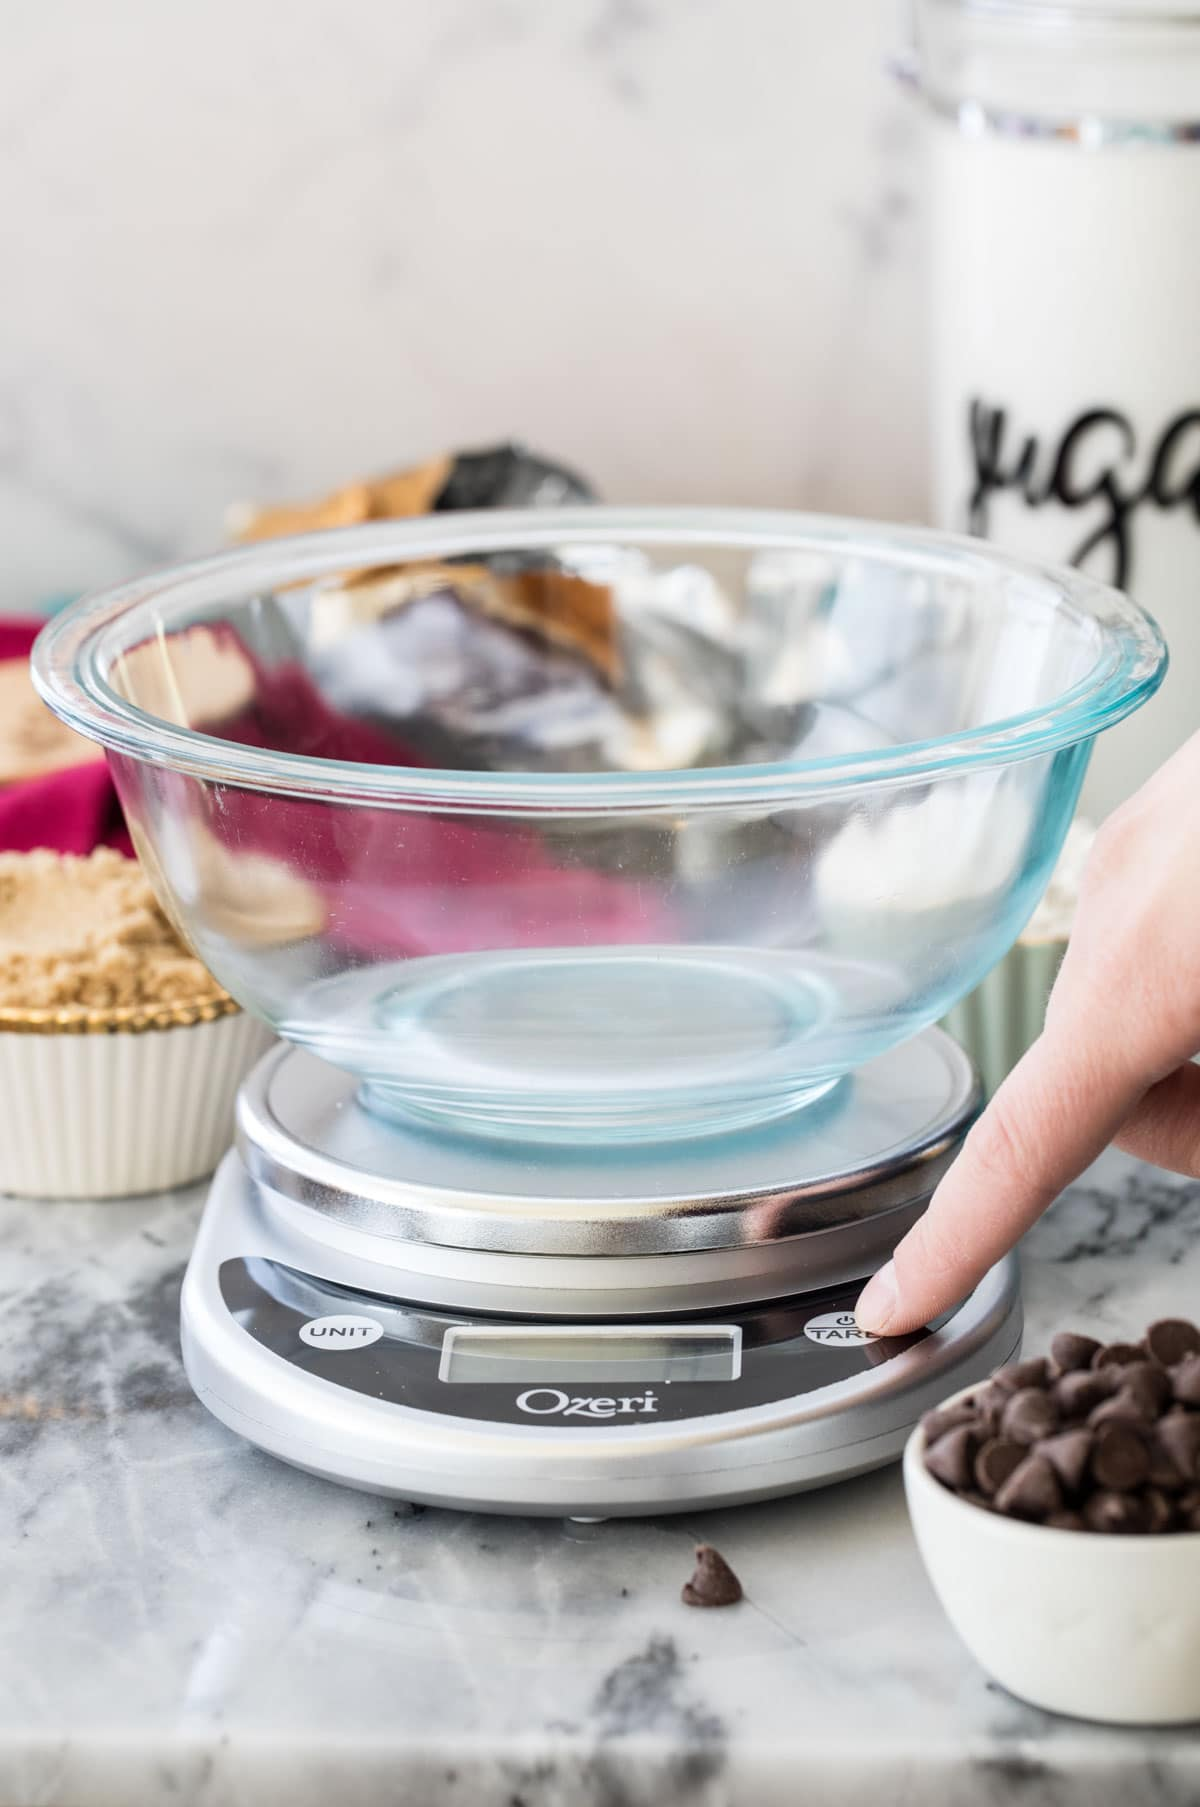 pressing power button on kitchen scale